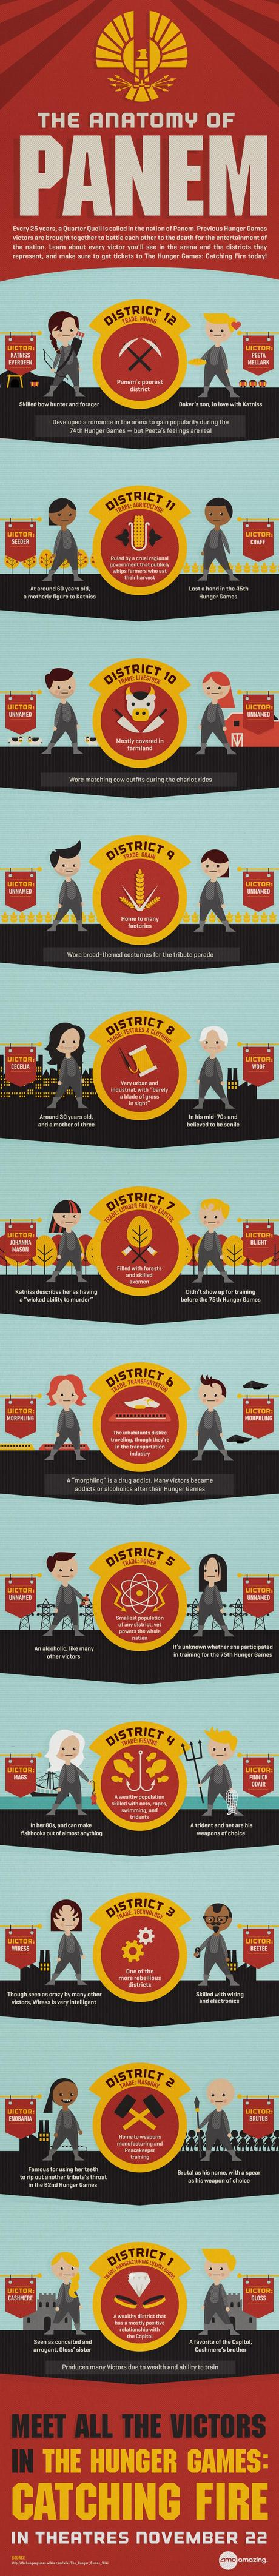 The Anatomy of Panem - Hunger Games: Catching Fire [Infographic]